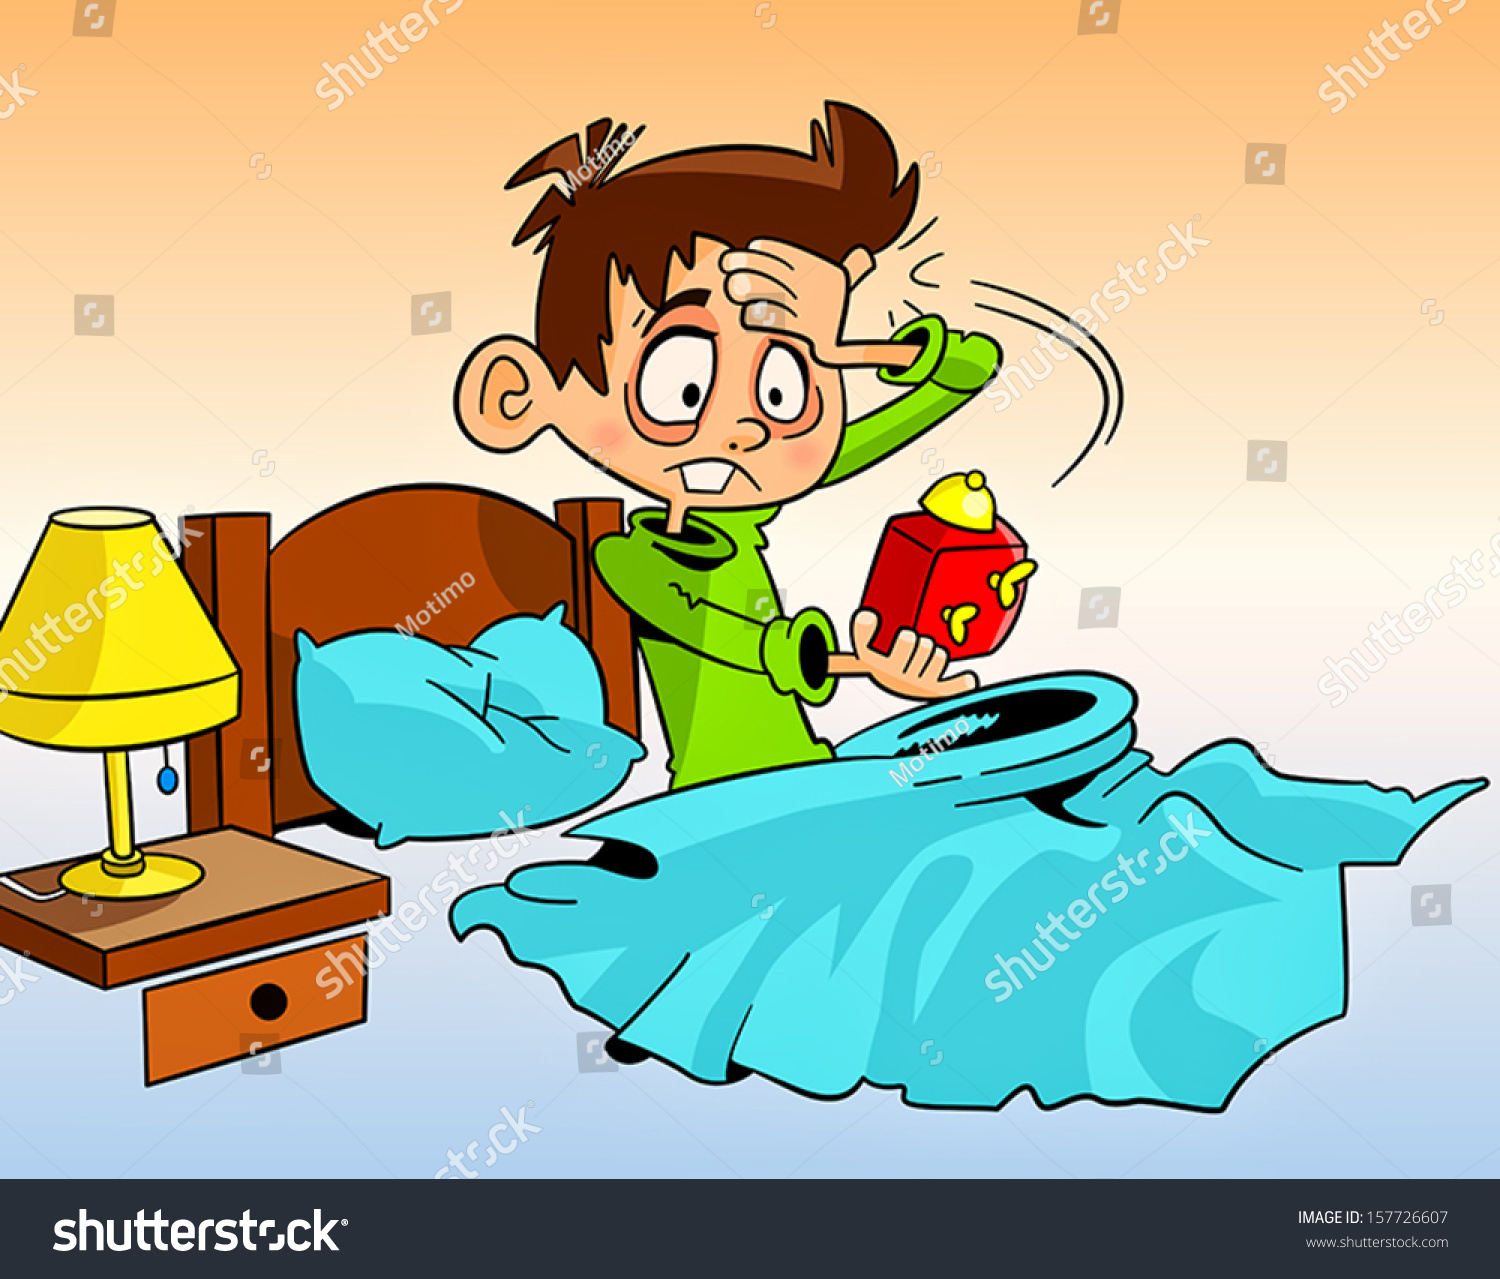 clipart of a girl waking up - photo #30